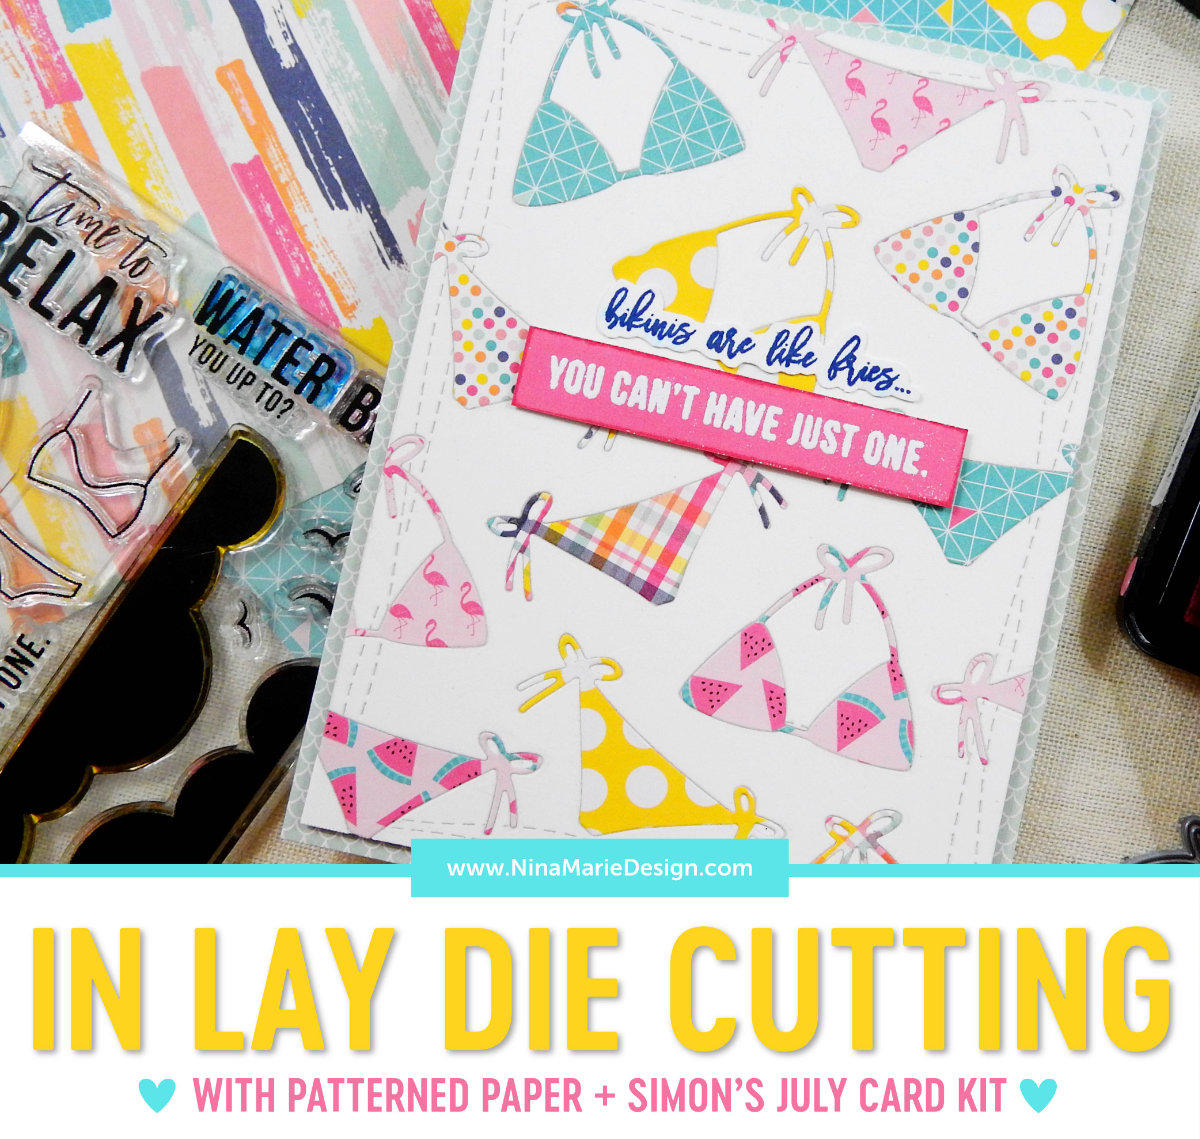 In Lay Die Cutting with Pattern Paper | Nina-Marie Design